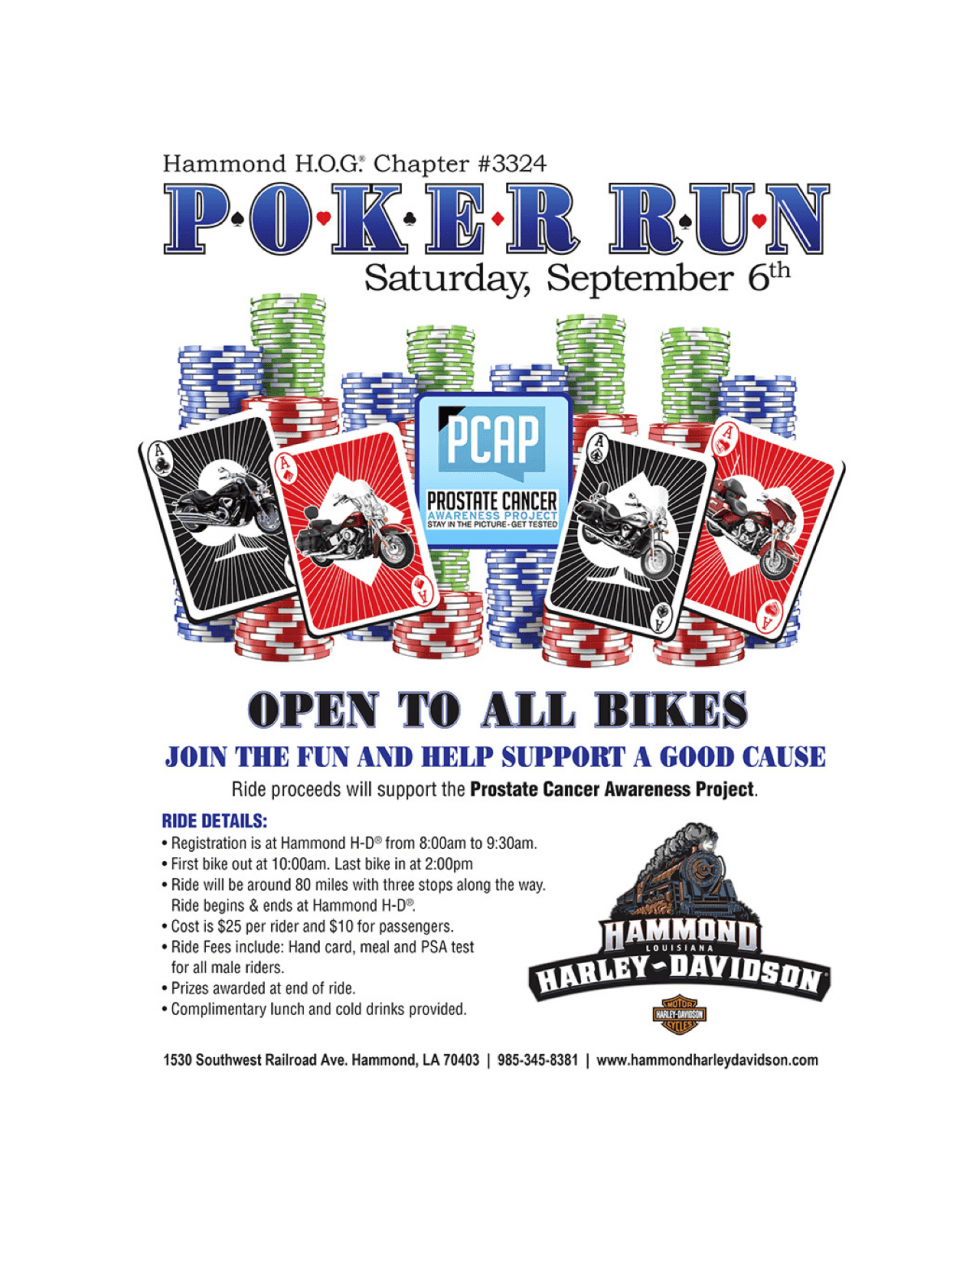 Picture of the Flyer for the September 6, 2014 Hammond HOG Poker Run for Prostate Cancer